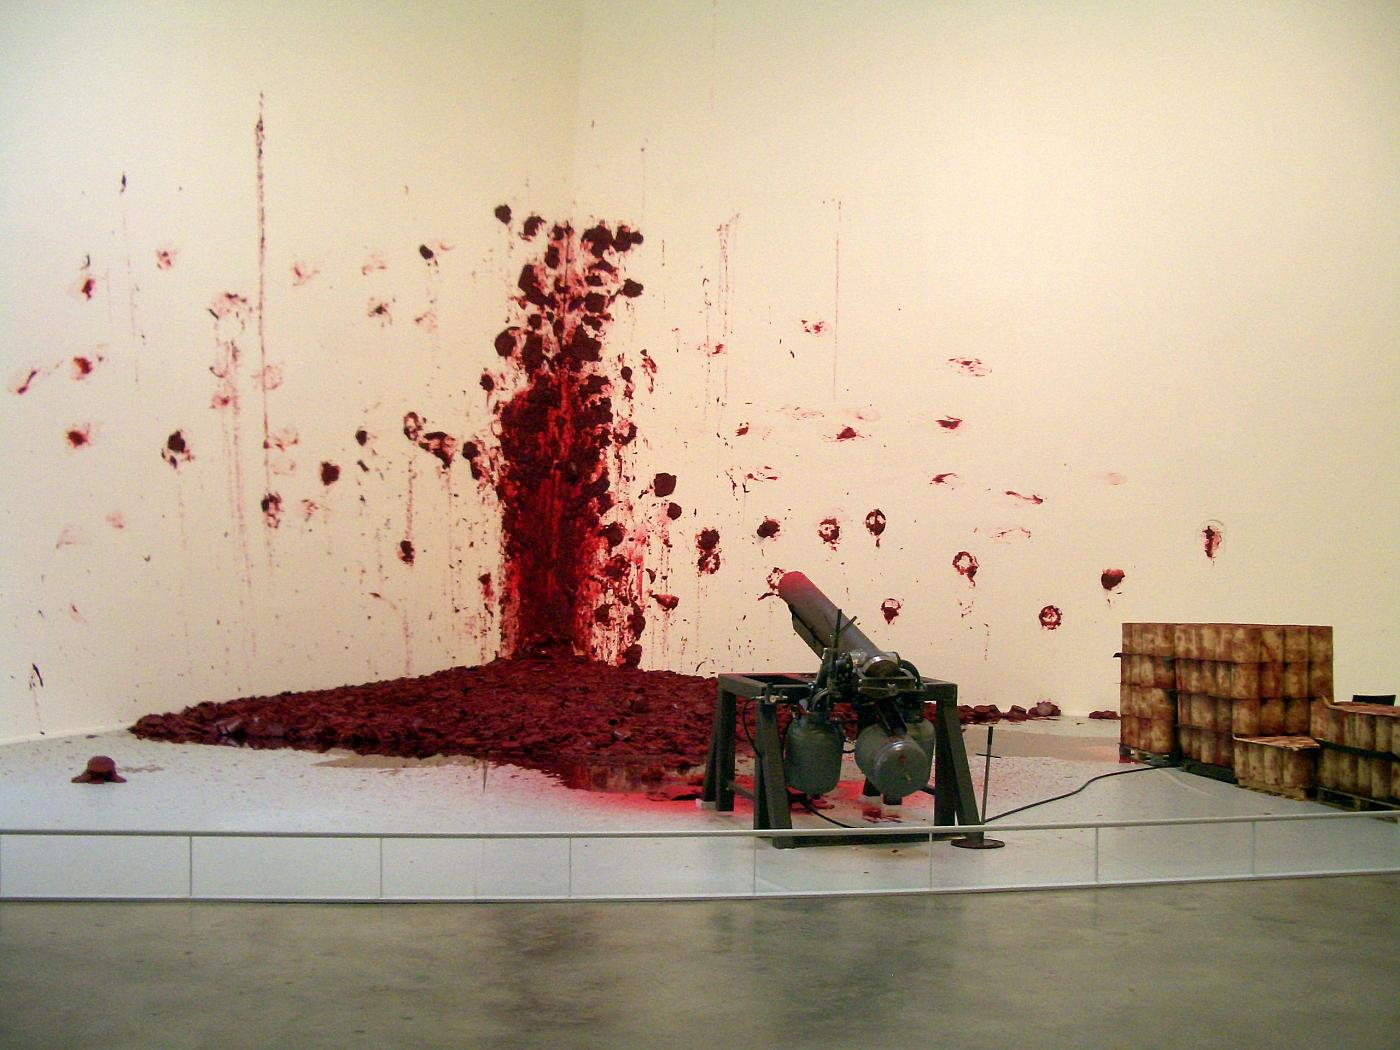 bilbao_guggenheim_anish_kapoor_shooting_into_the_corner_red_wax_cannon